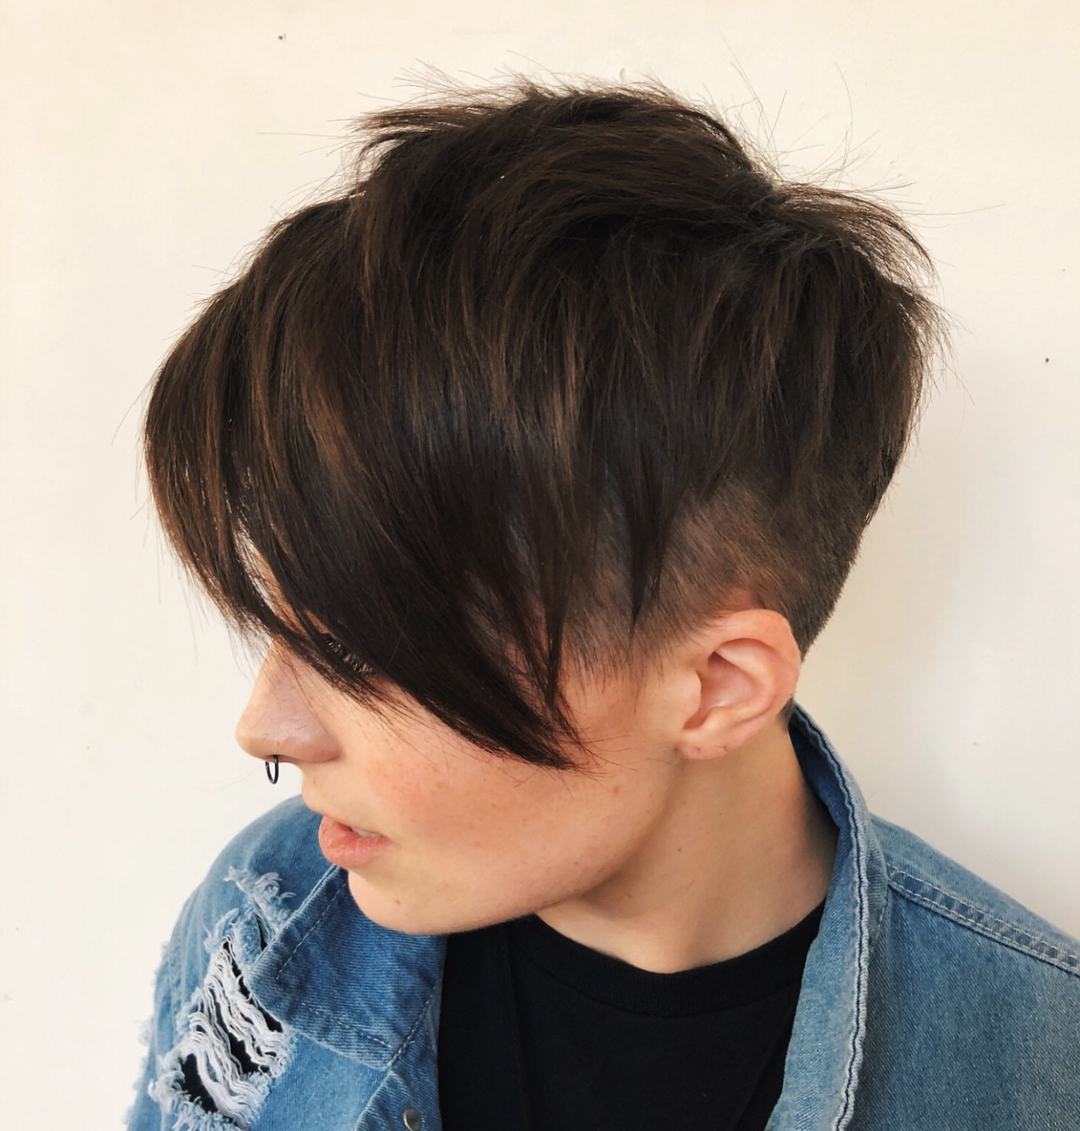 Trendy Androgynous Pixie Haircuts For 20 Bold Androgynous Haircuts For A New Look (View 8 of 20)